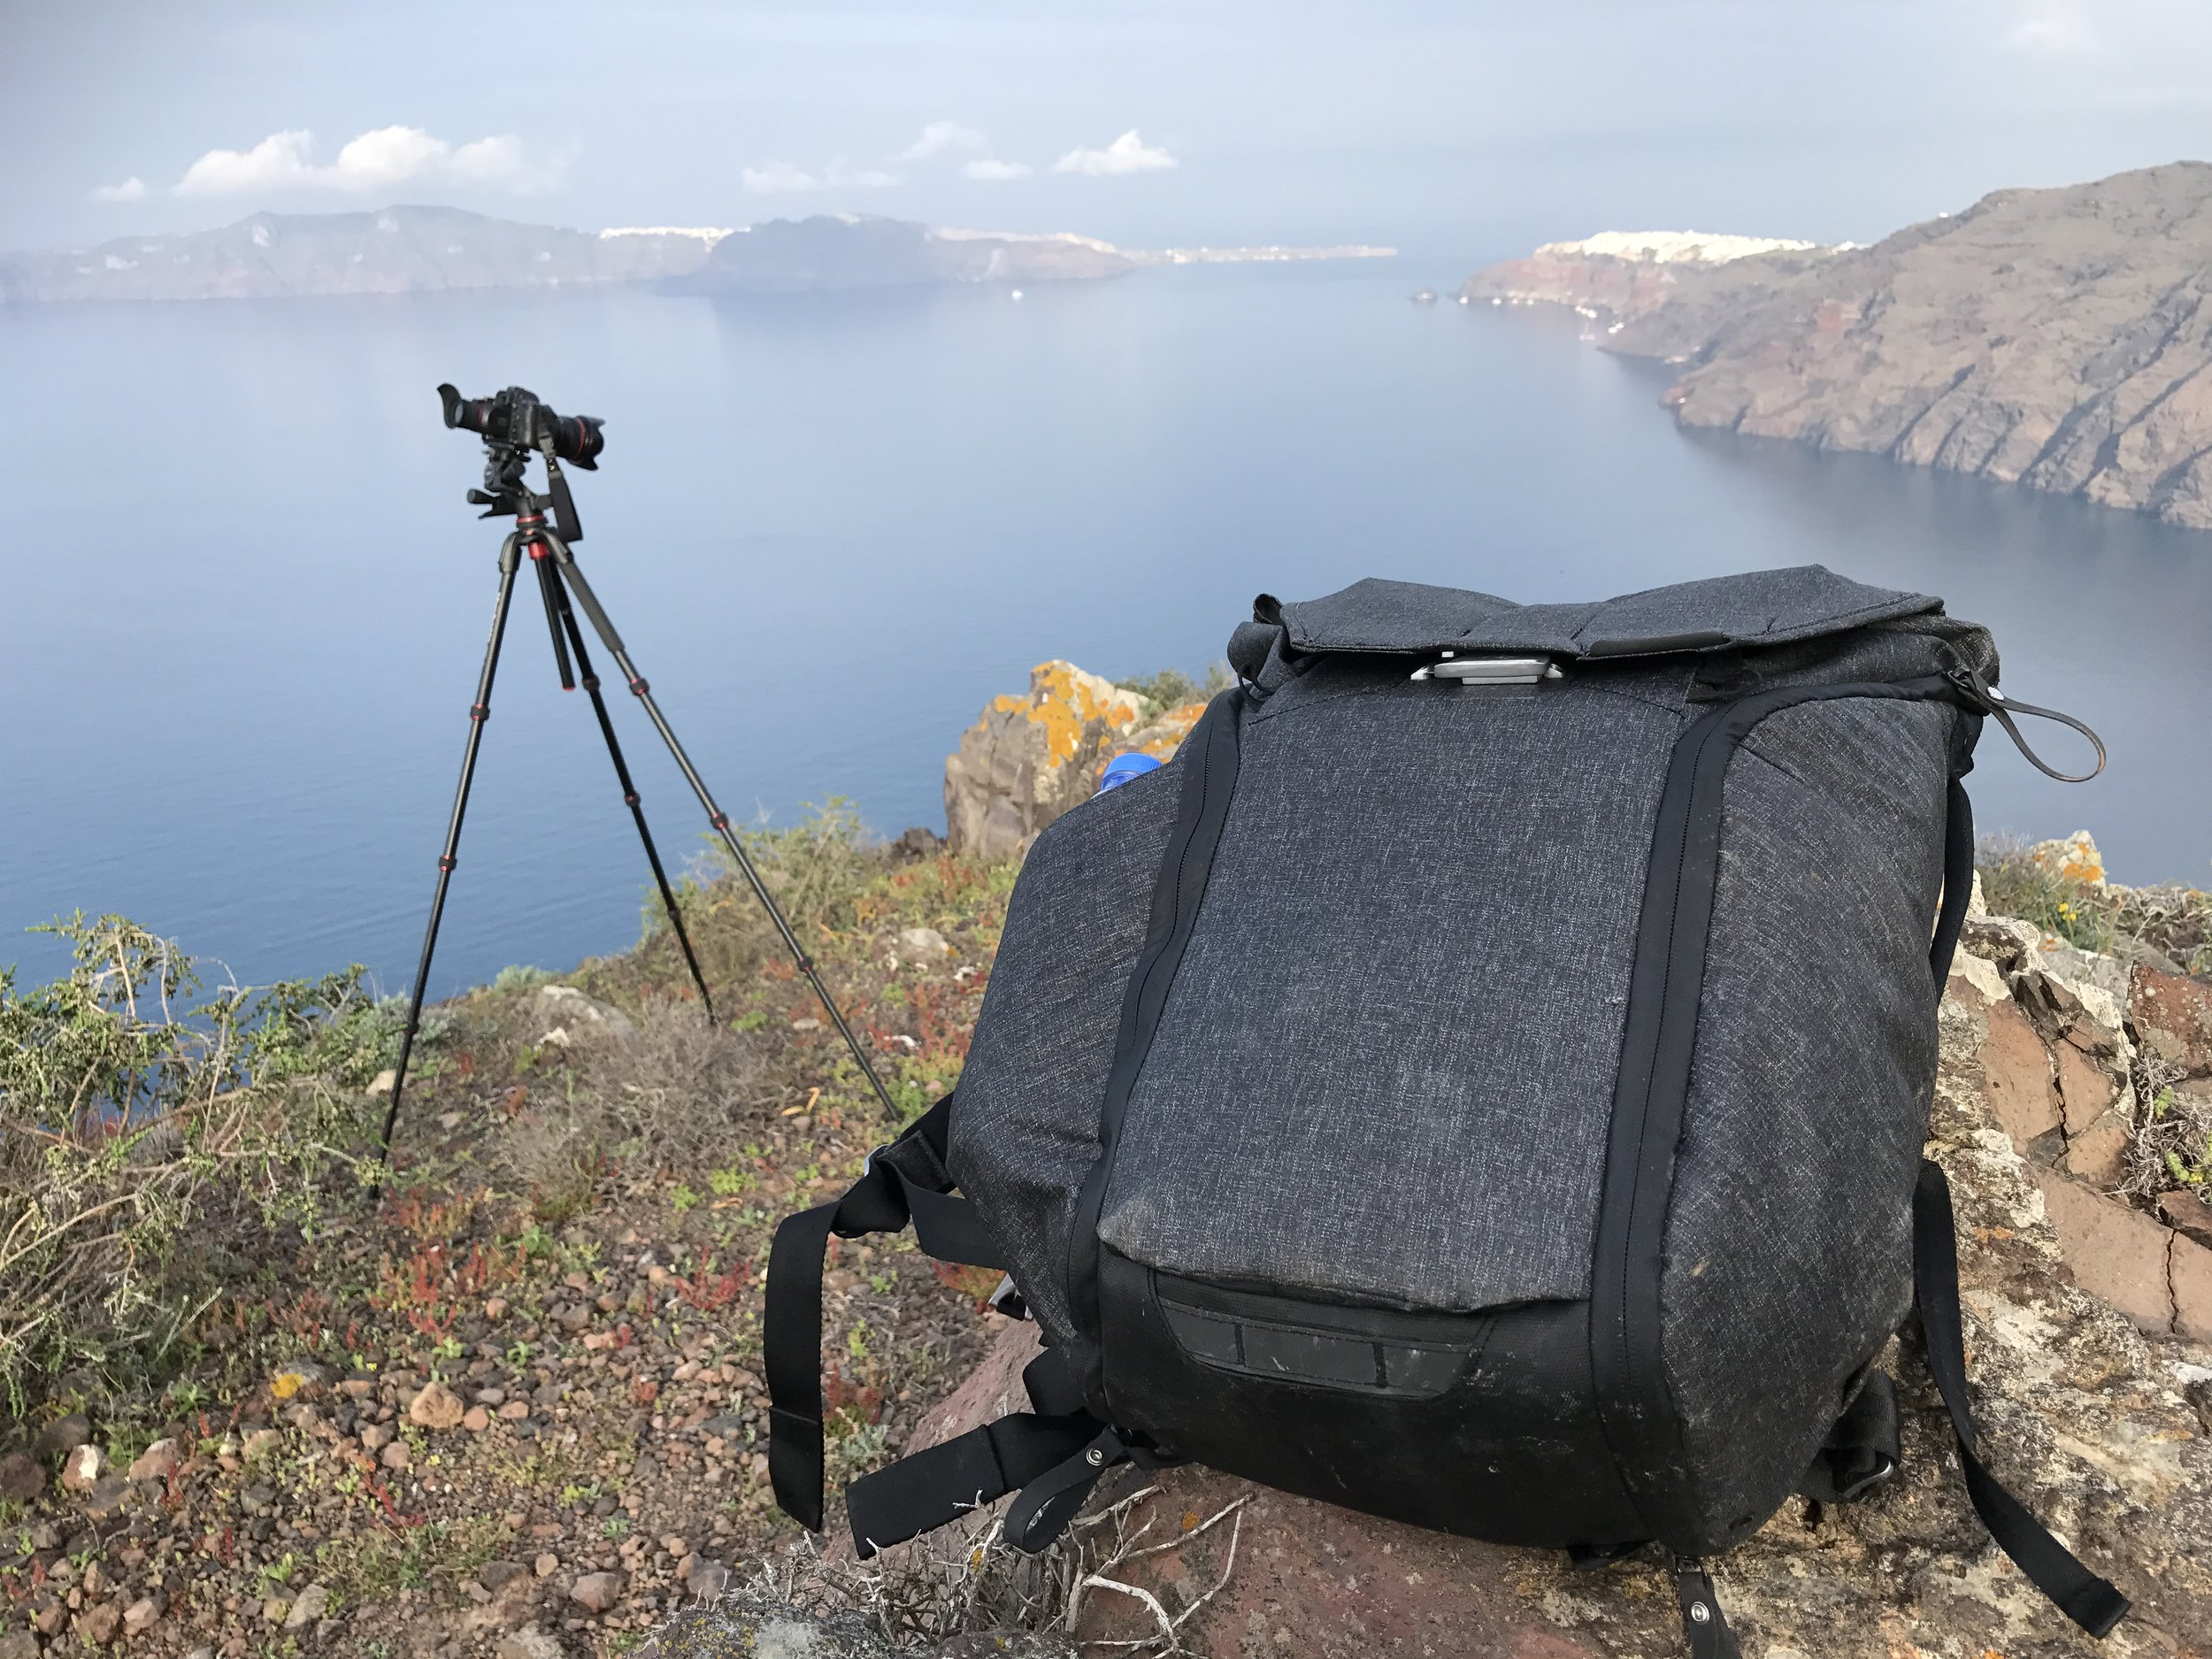 Peak Design Everyday Backpack on location in Santorini